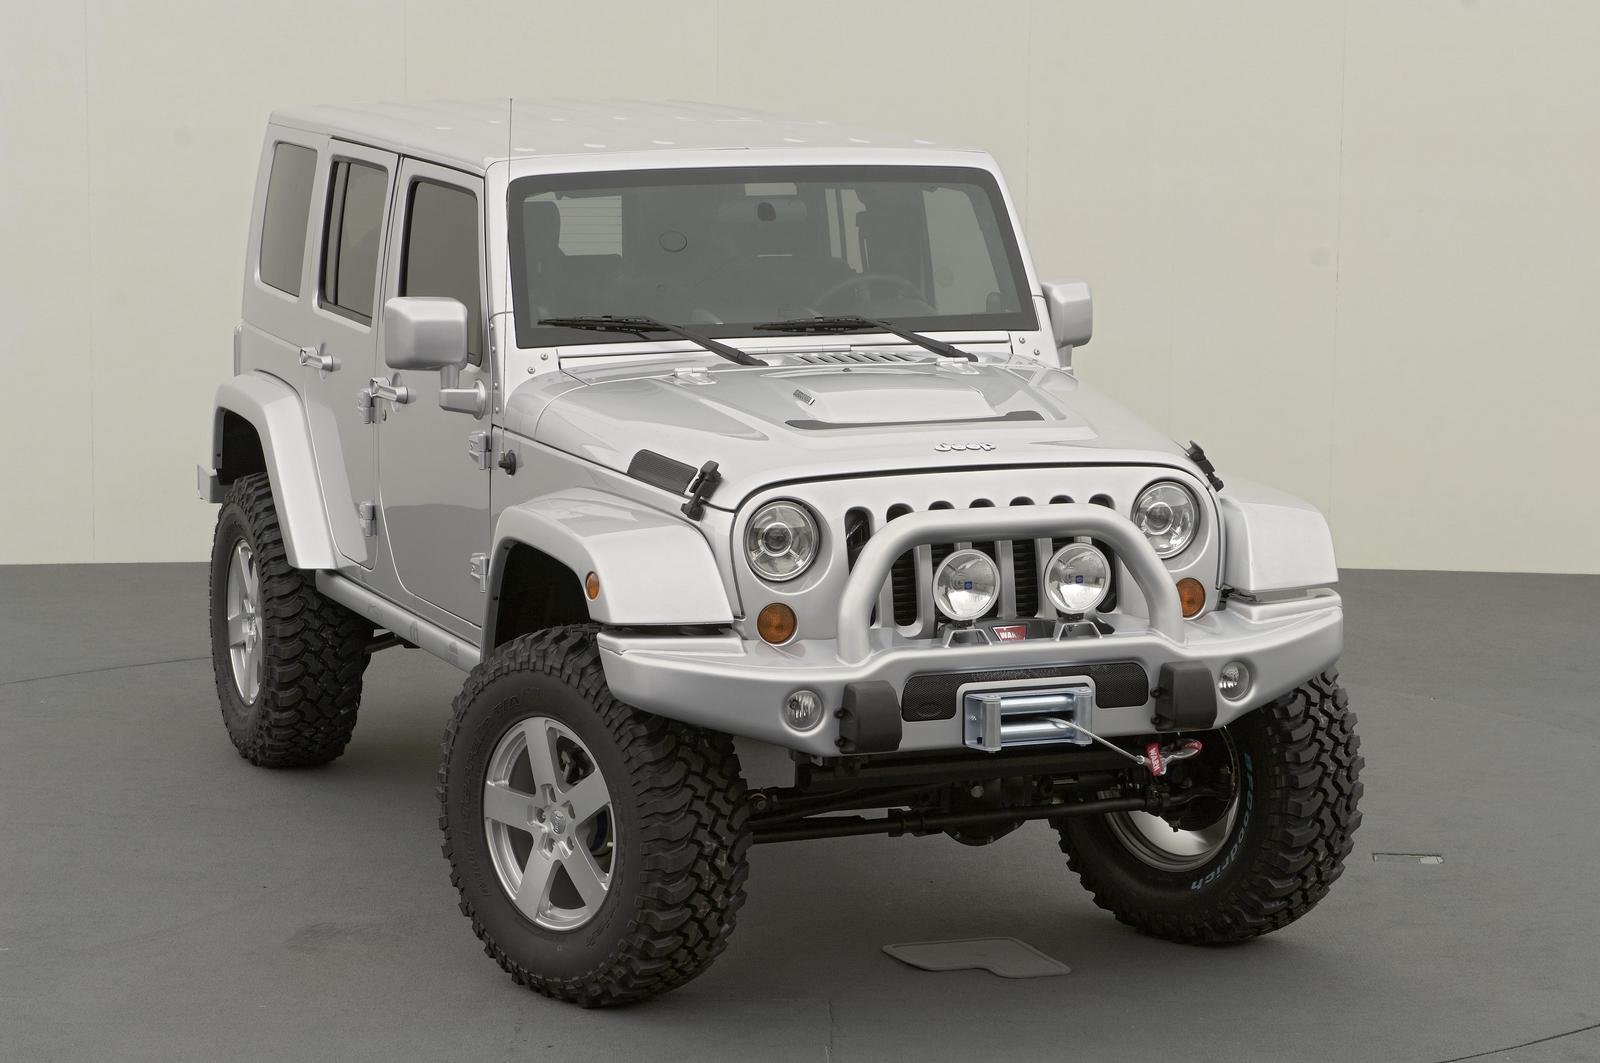 2007 jeep wrangler unlimited rubicon picture 109530 car review. Cars Review. Best American Auto & Cars Review